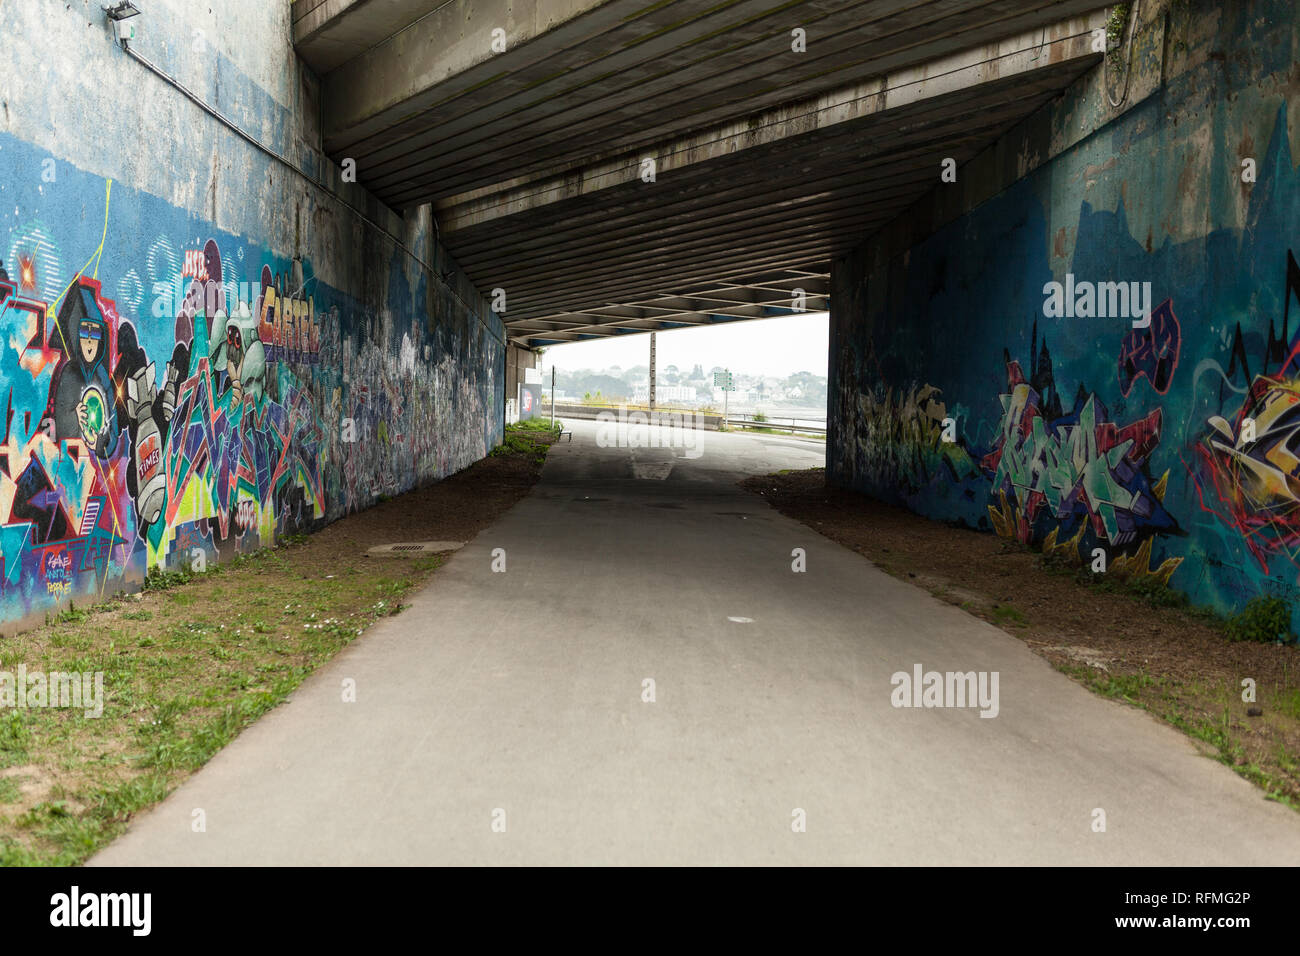 Brest, France 28 May 2018 Graffiti urban tunnel on the Botanical Garden in the Brest France may 2018. Stock Photo